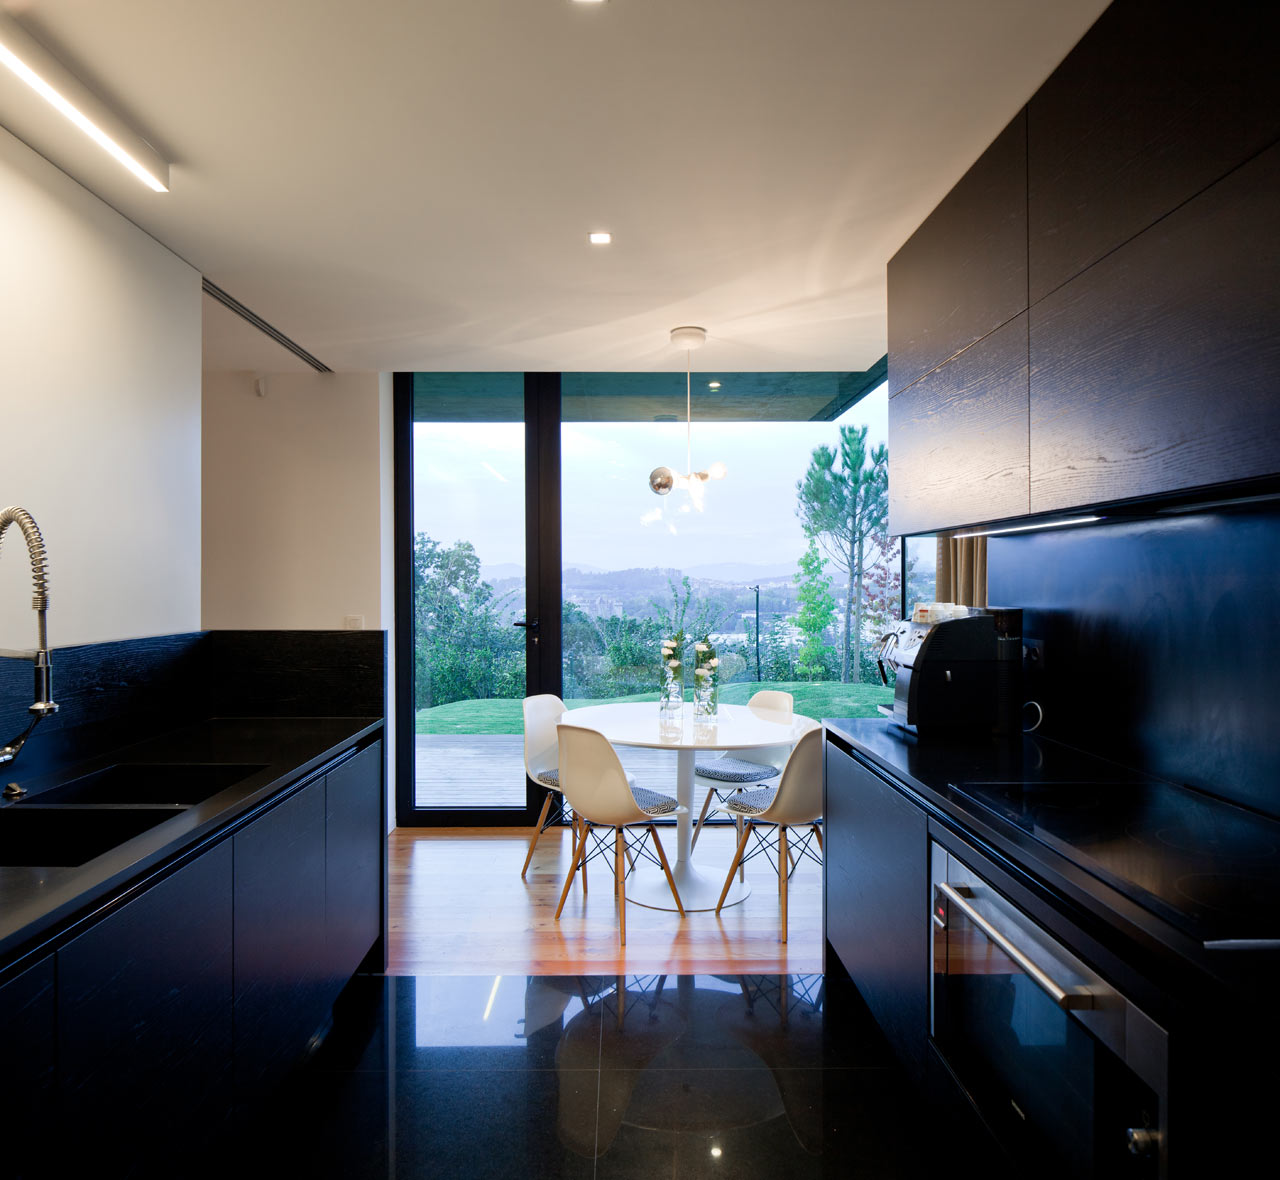 L23_HOUSE_Pitagoras-Arquitectos-12-kitchen